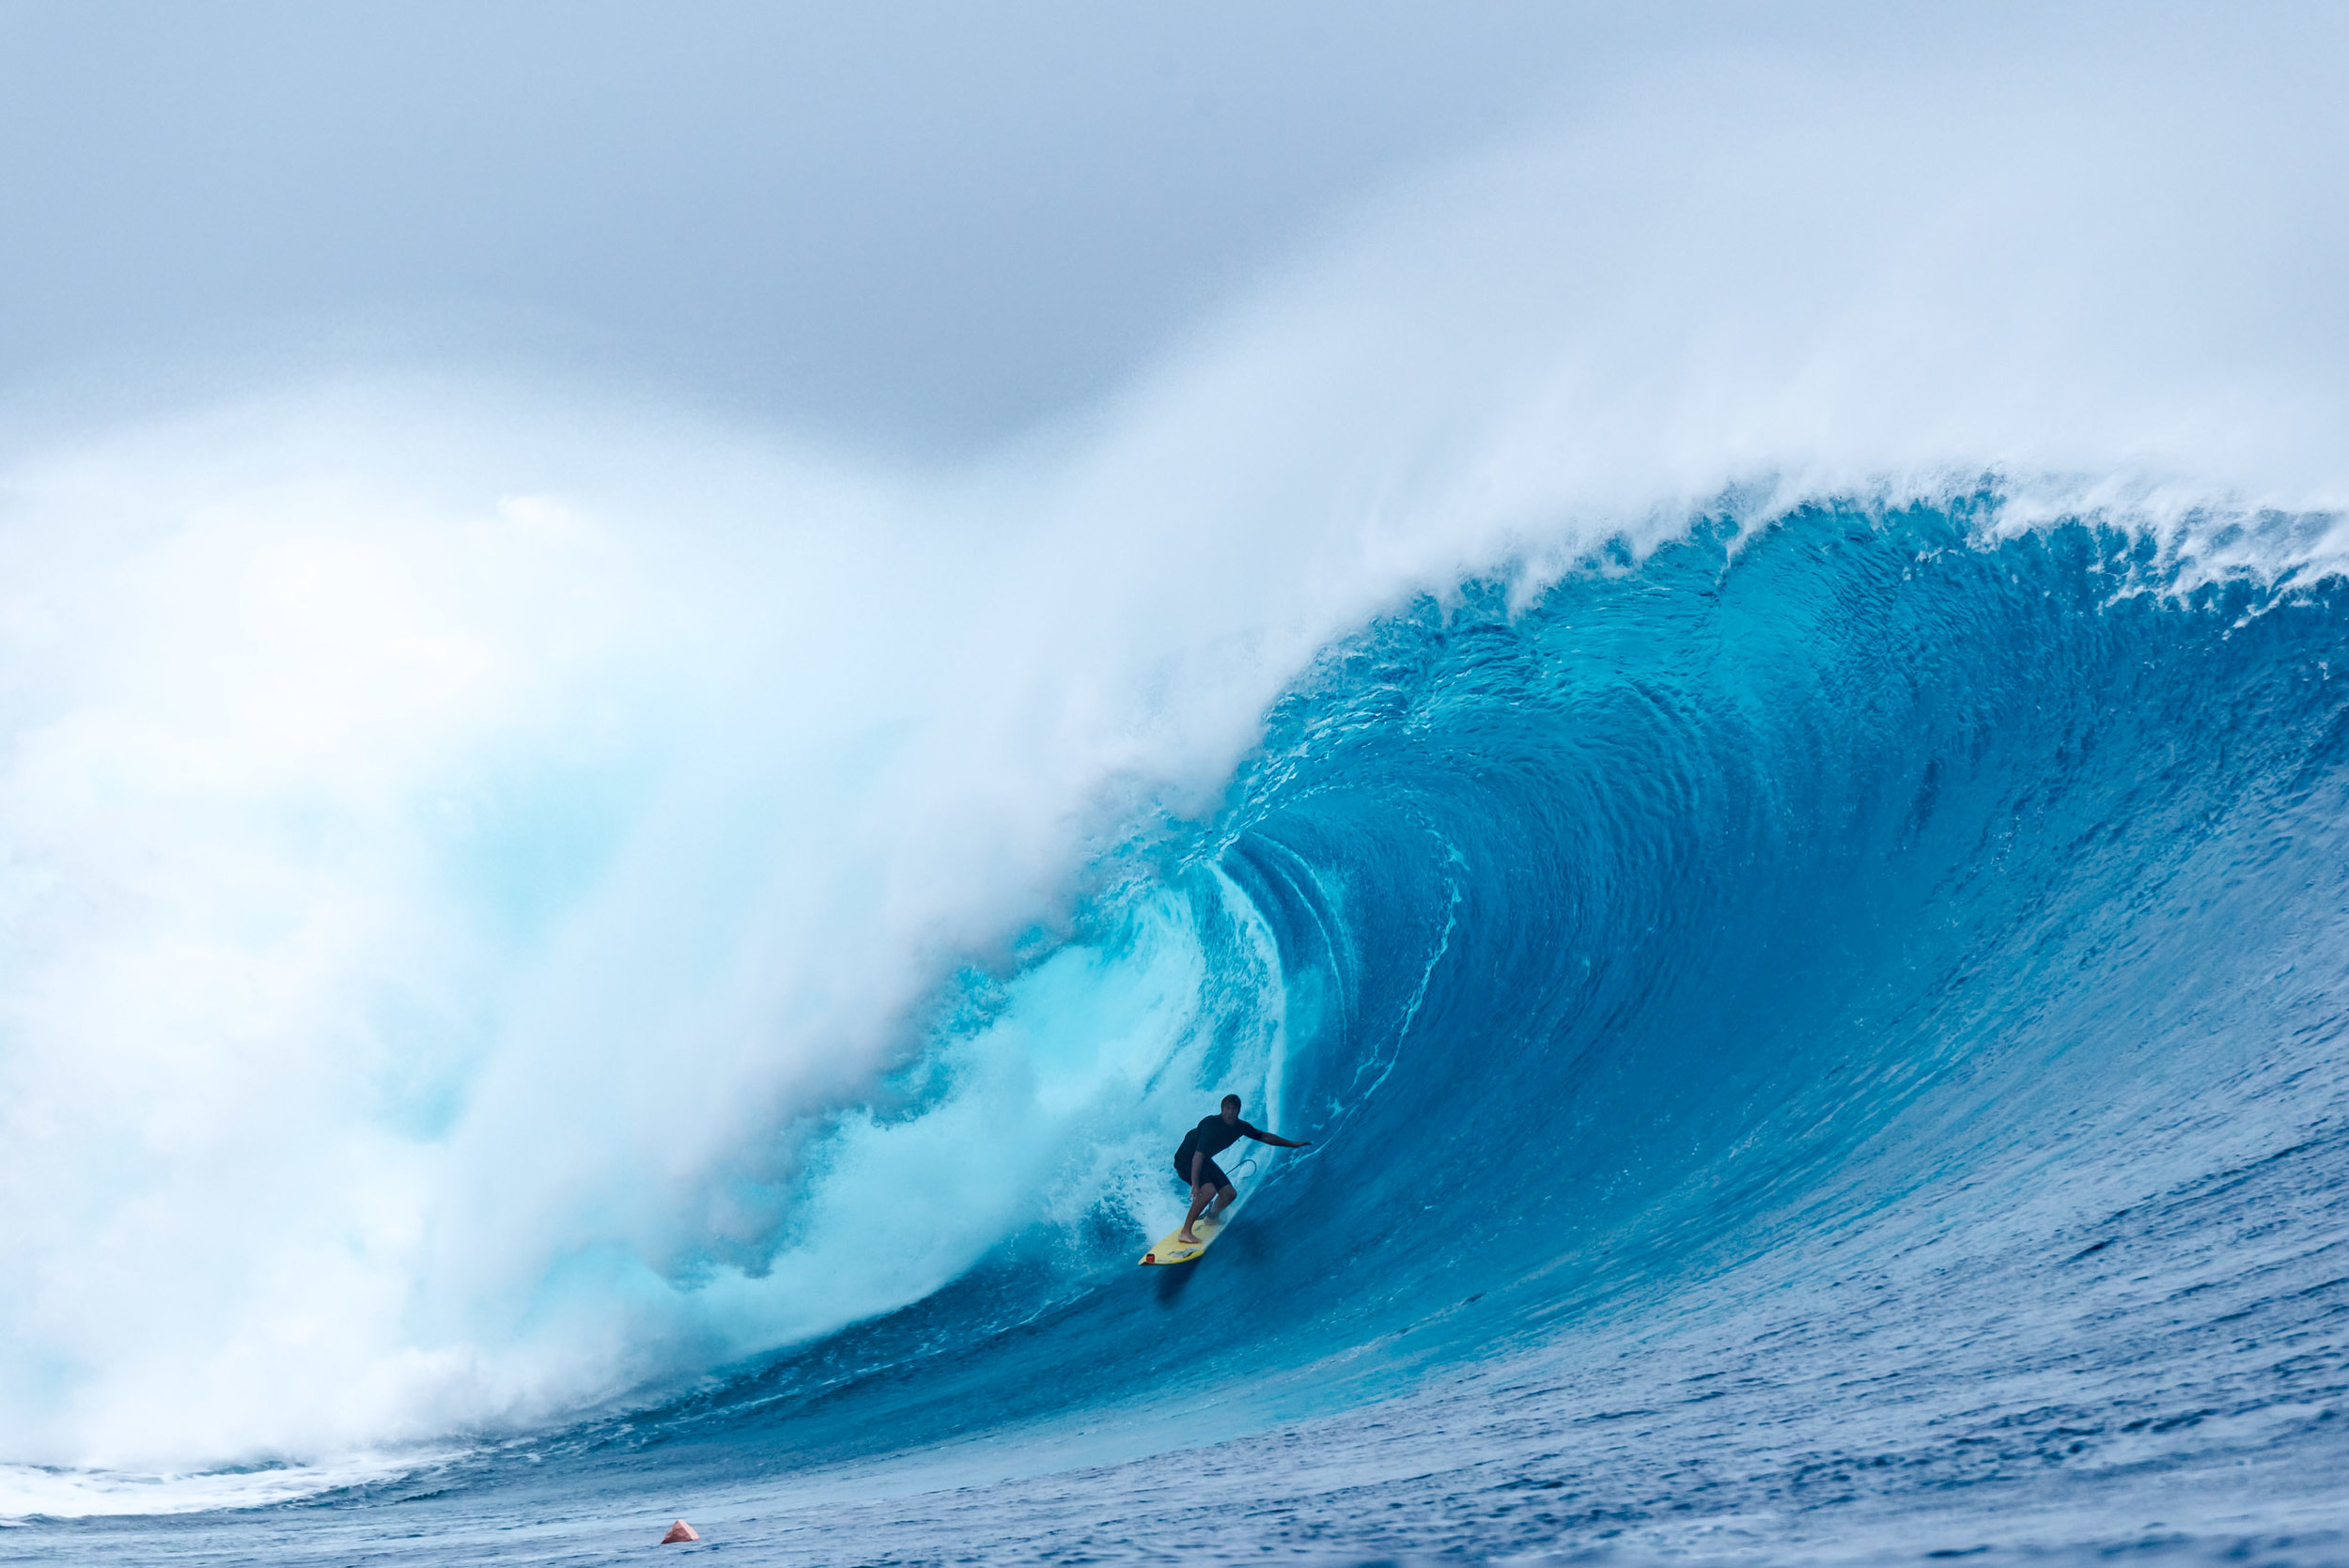 Sequence - How to take amazing surfing photos every time-12.jpg